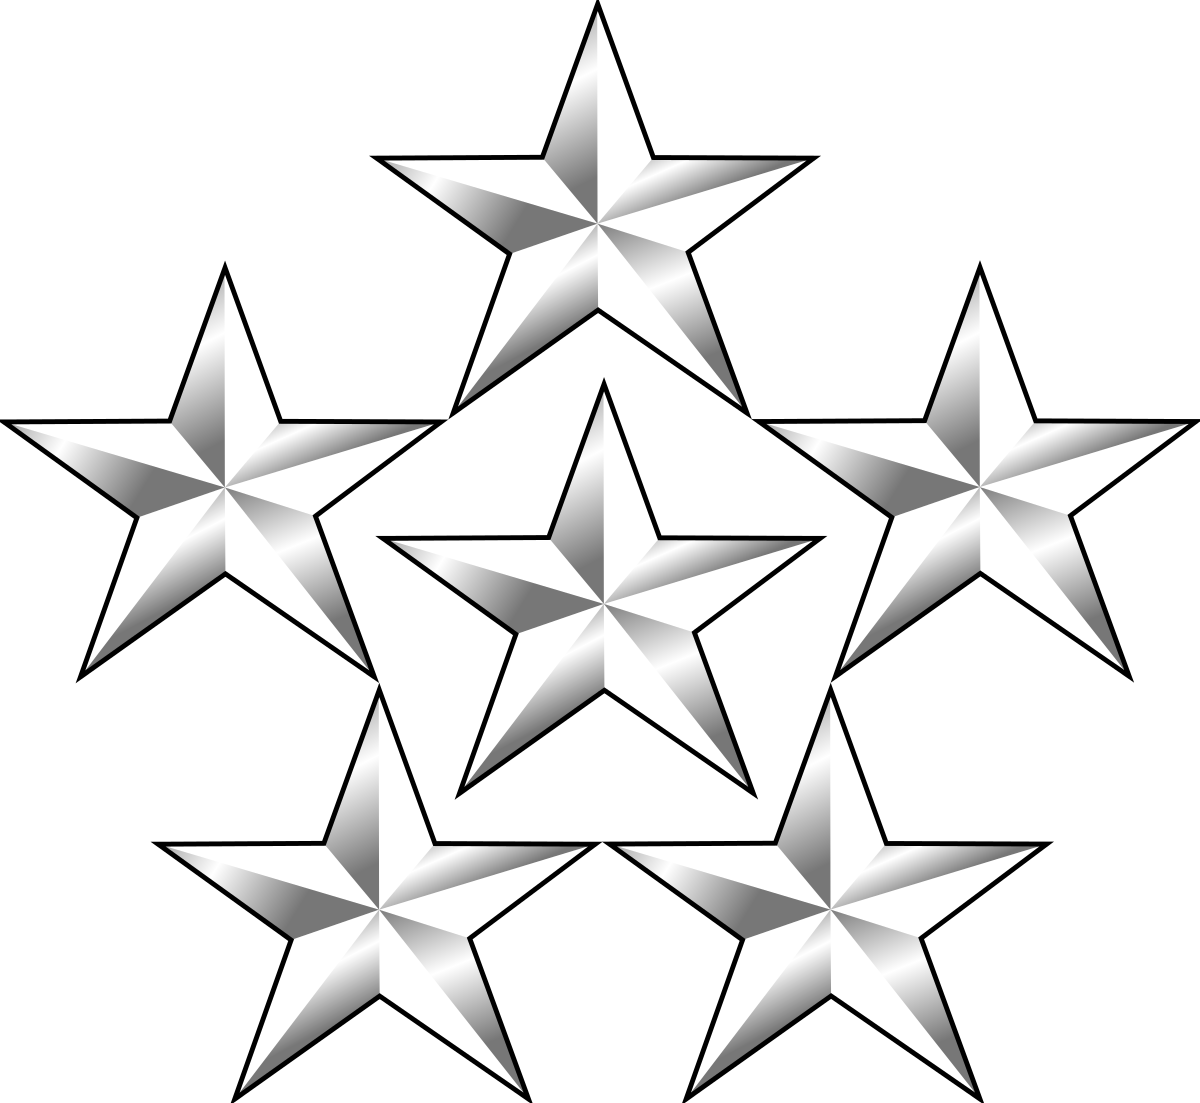 Pink six point star clipart banner black and white download Star Image Group (53+) banner black and white download